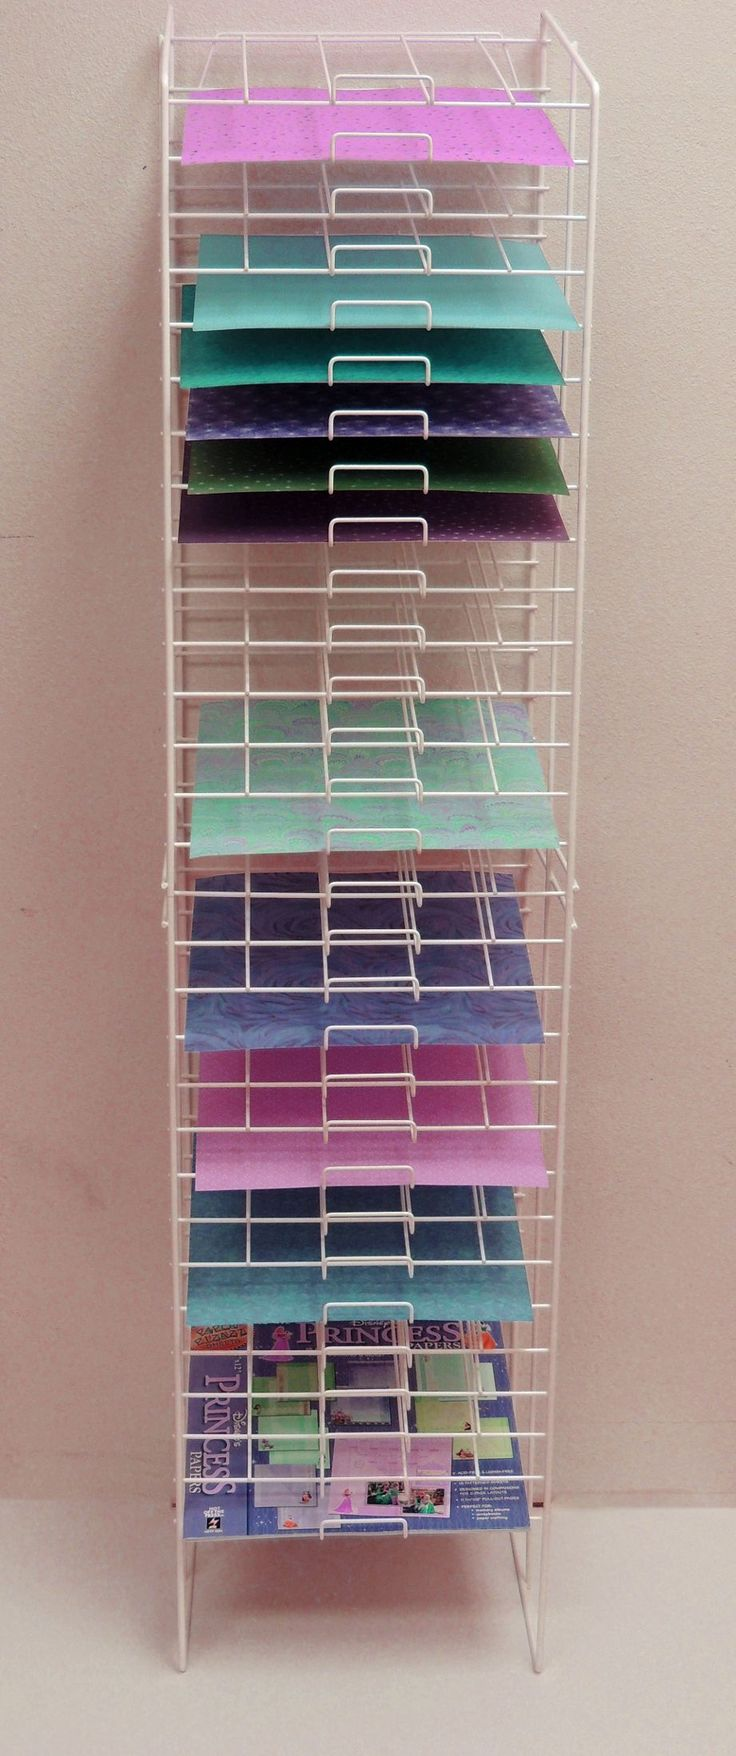 1183 best images about cricut ideas on pinterest for Craft paper storage ideas